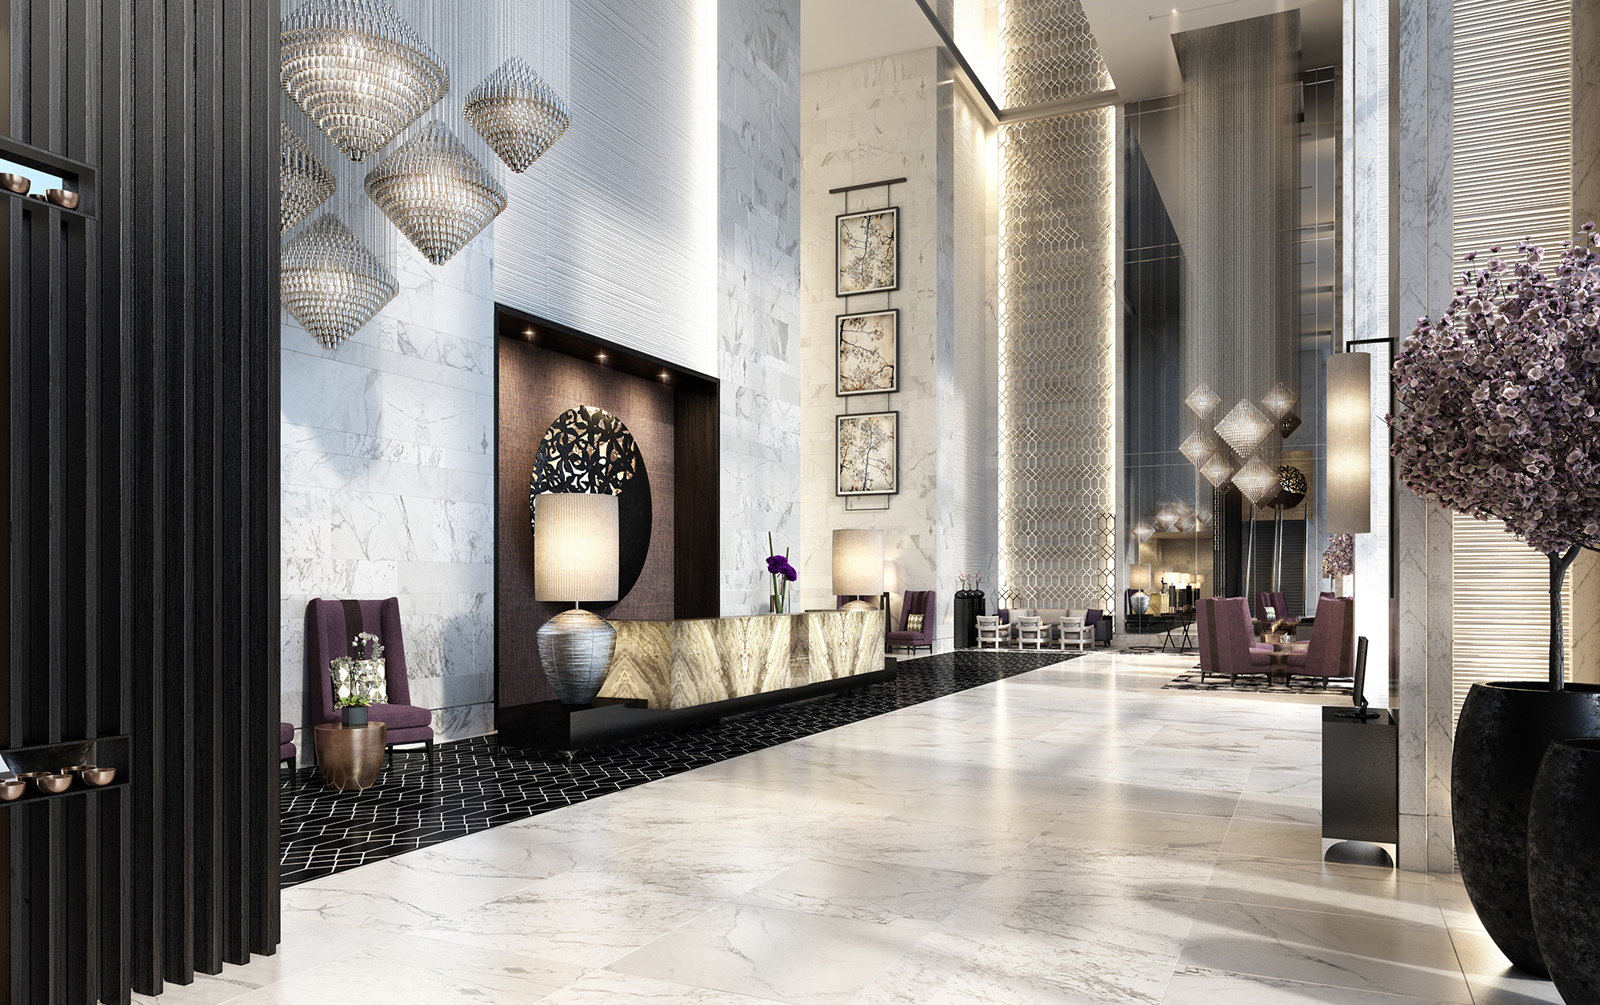 Steigenberger takes a step into dubai s luxury hotel scene for Business hotel design